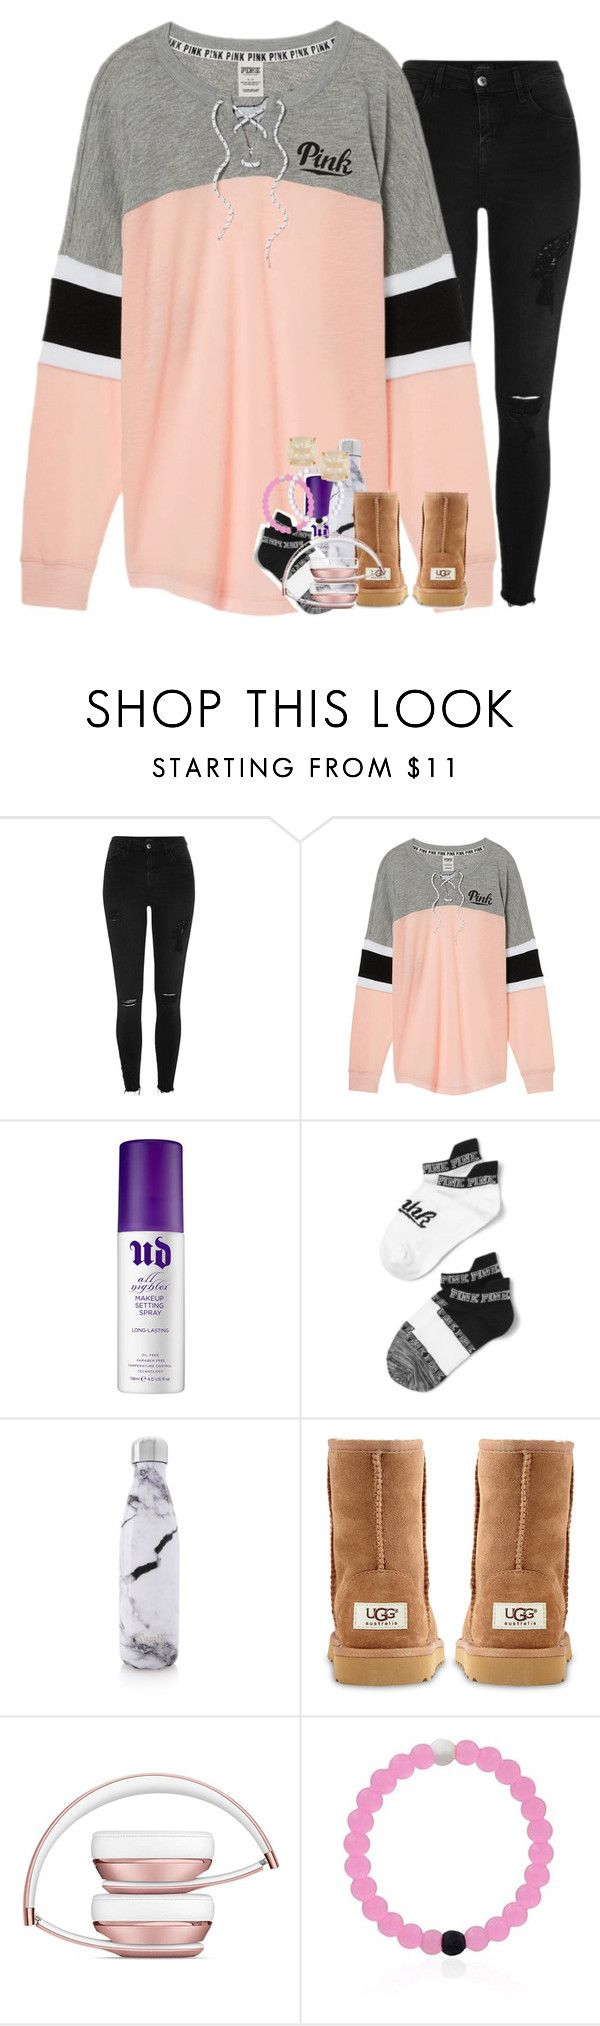 when that highlight is poppin by ellaswiftie13 on Polyvore featuring River Island, Victorias Secret, Urban Decay, Swell, UGG Australia and Kate Spade